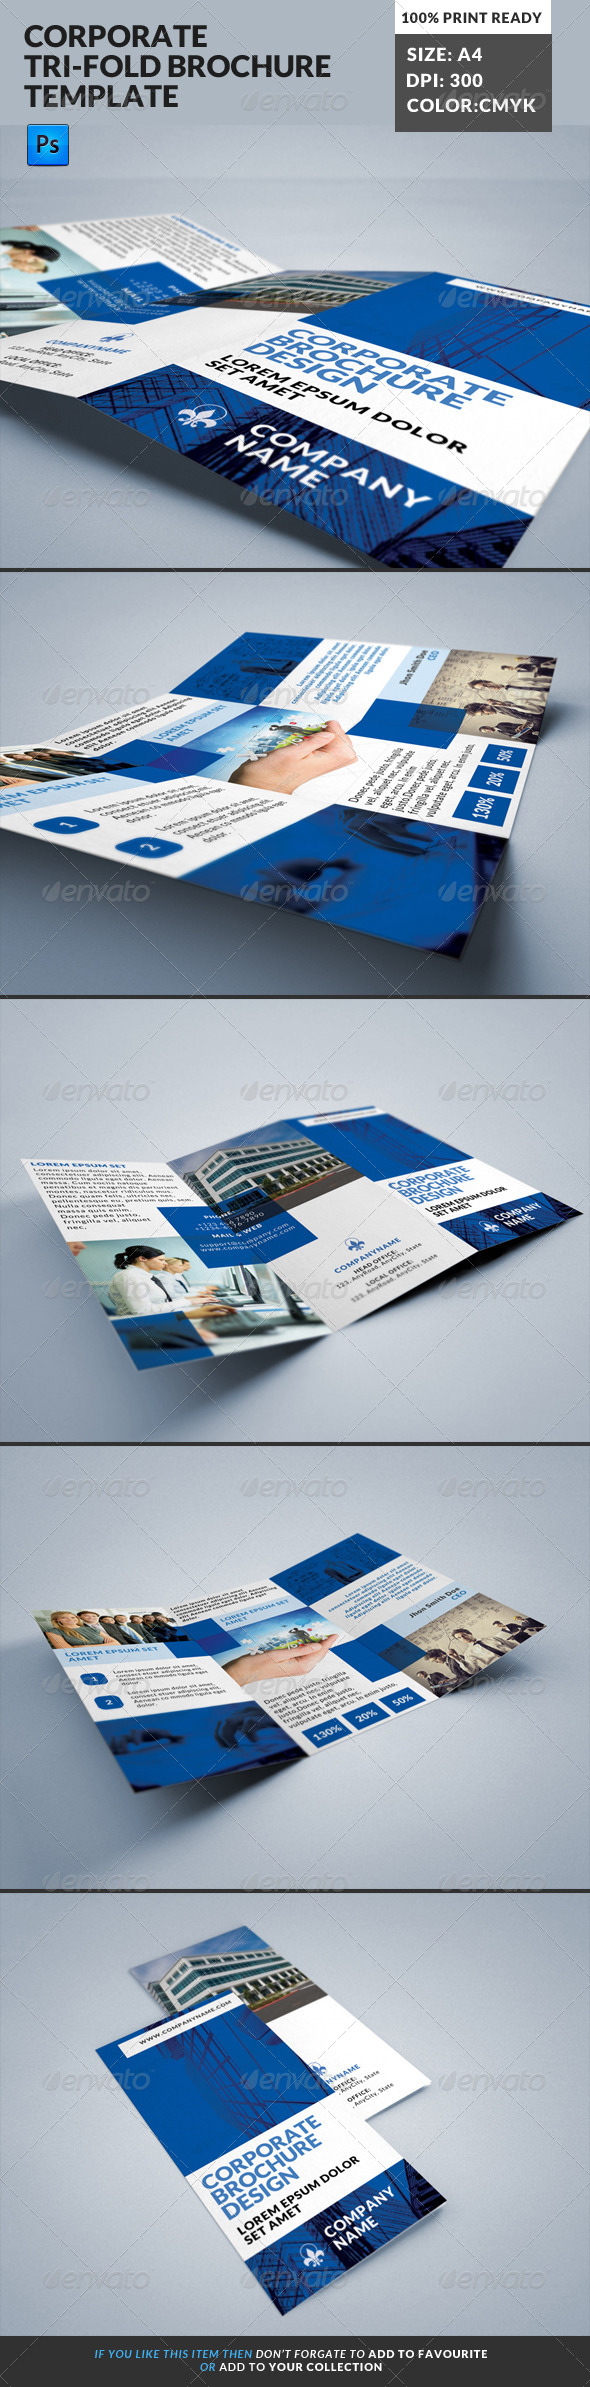 GraphicRiver Corporate Tri-Fold Brochures Template 16 8183299